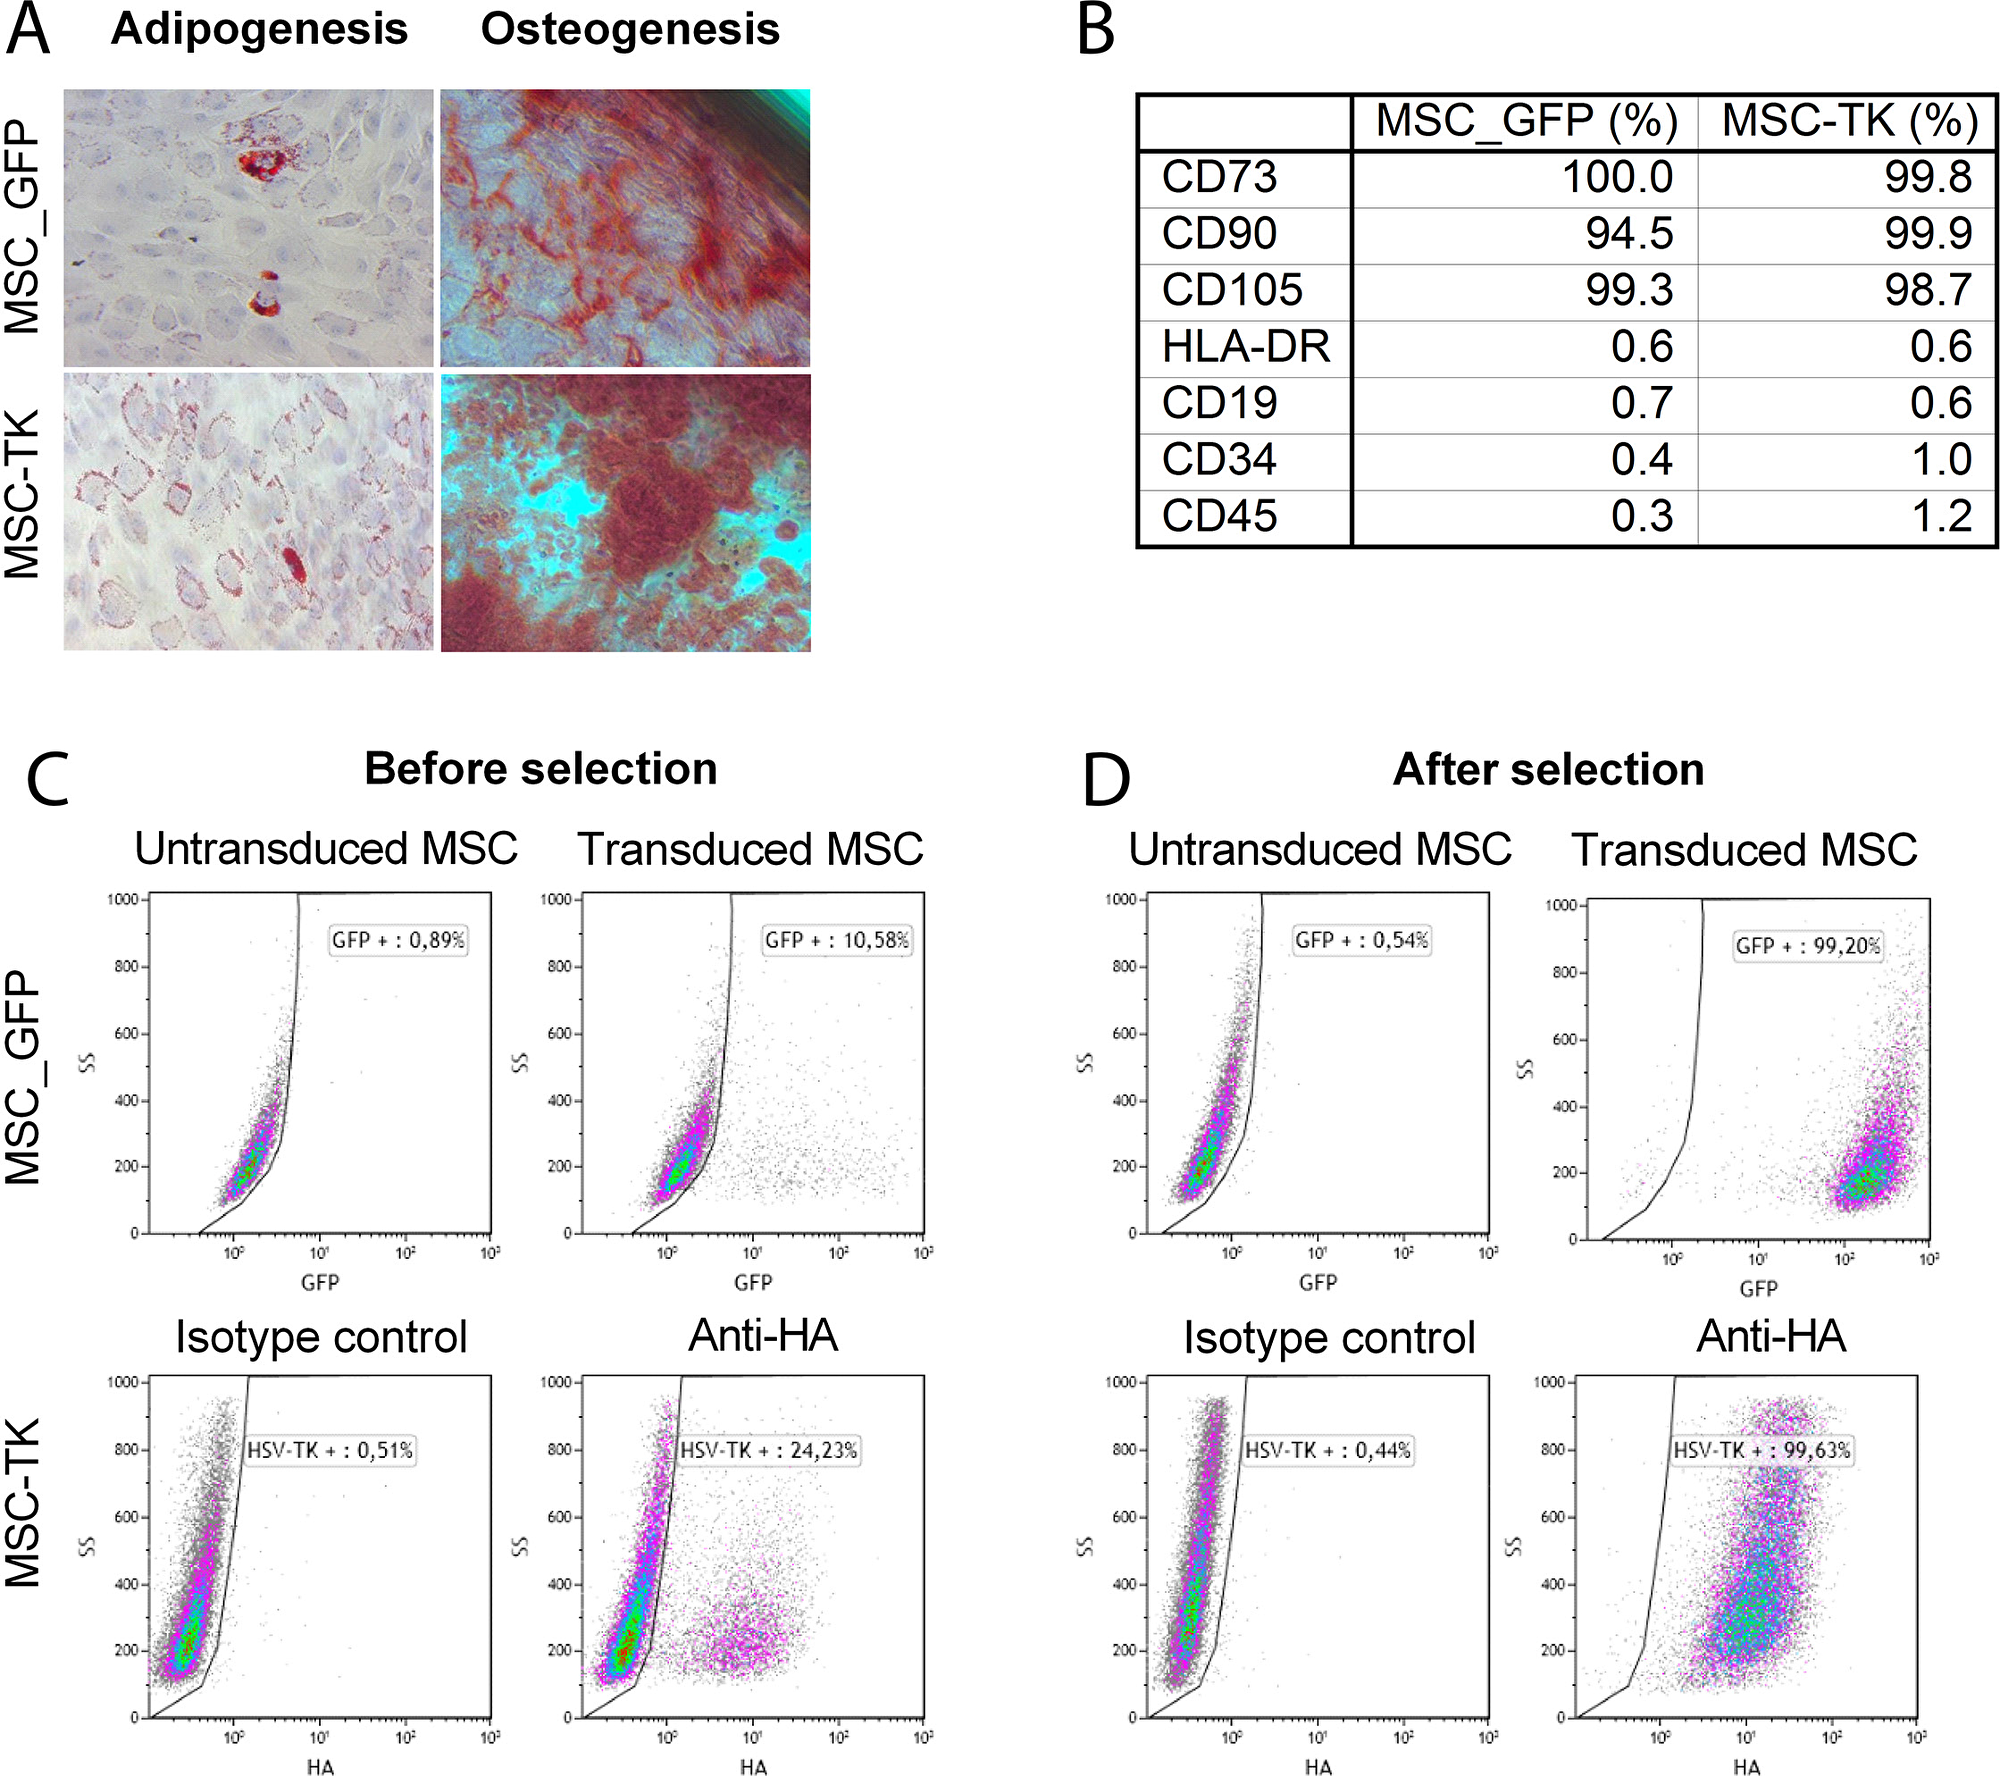 Characterization of transduced MSCs by in vitro differentiation assay and flow cytometry.